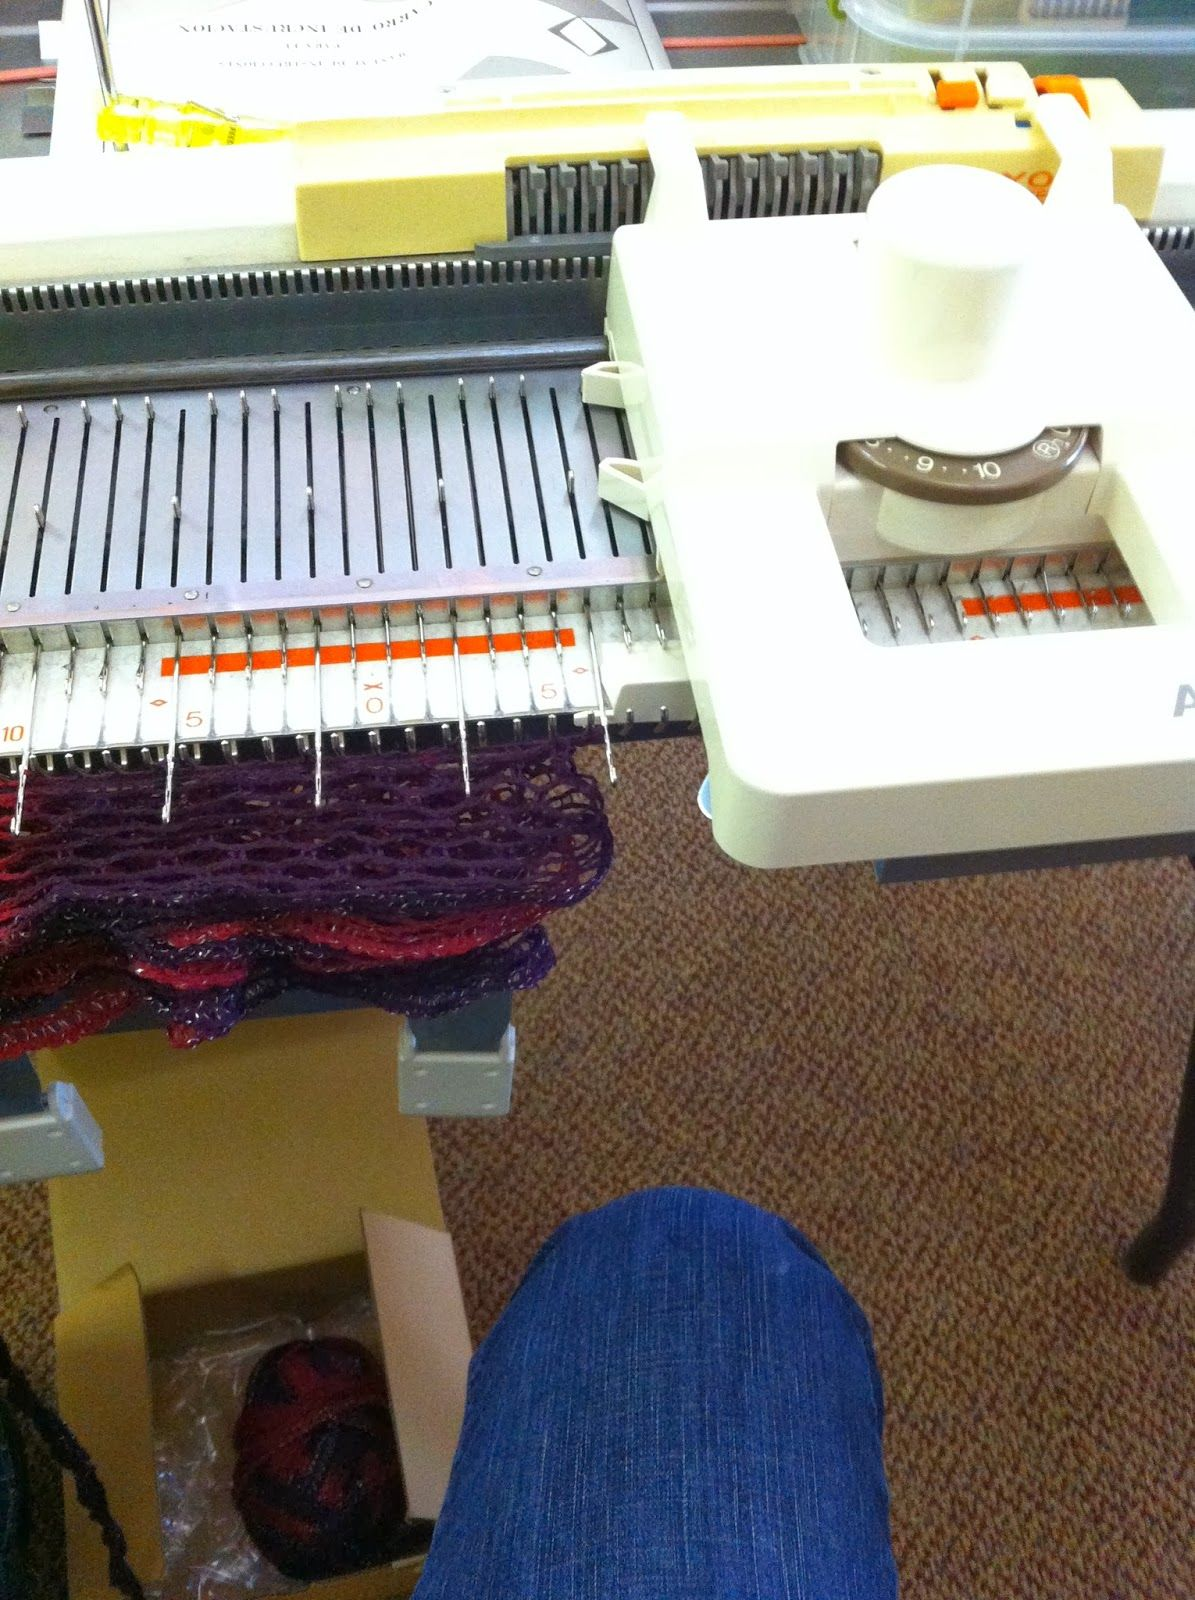 When you open a knitting machine it does look like spocks brain when you open a knitting machine it does look like spocks brain at first don bankloansurffo Images